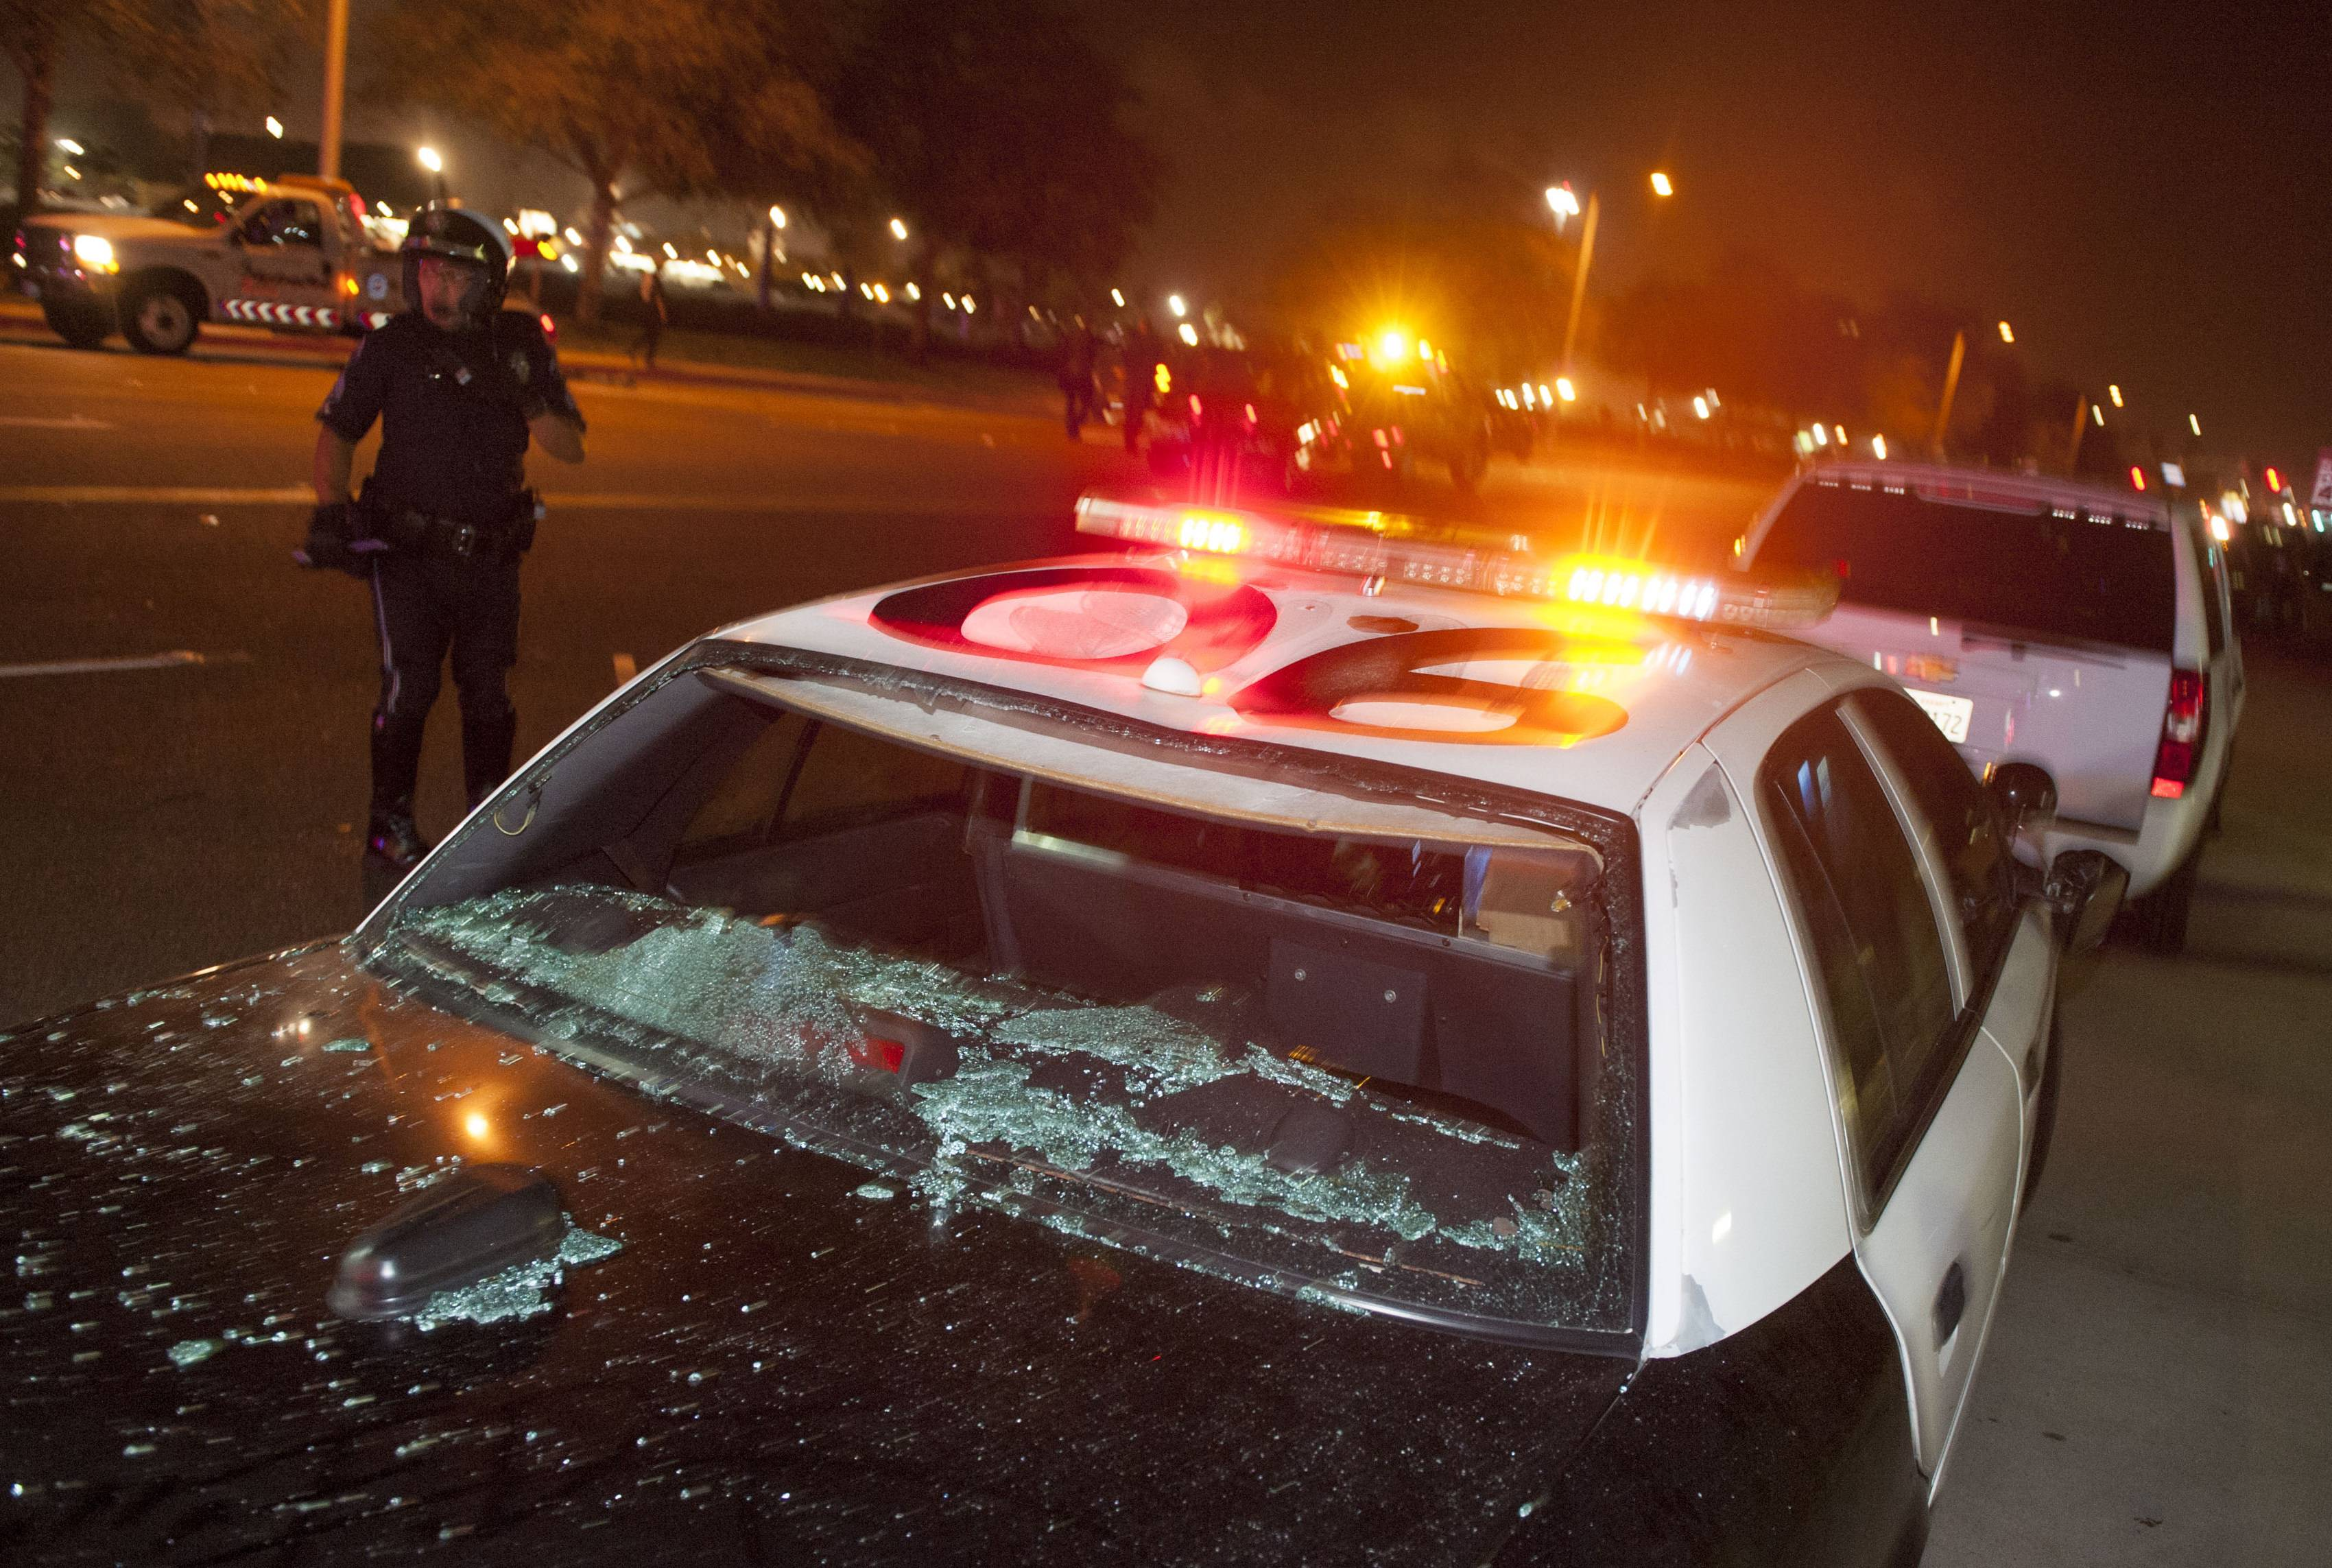 A damaged Costa Mesa Police cruiser sits at the corner of Fair Drive and Fairview Road near the OC Fairgrounds where Donald Trump spoke earlier Thursday in Costa Mesa, Califorinia.